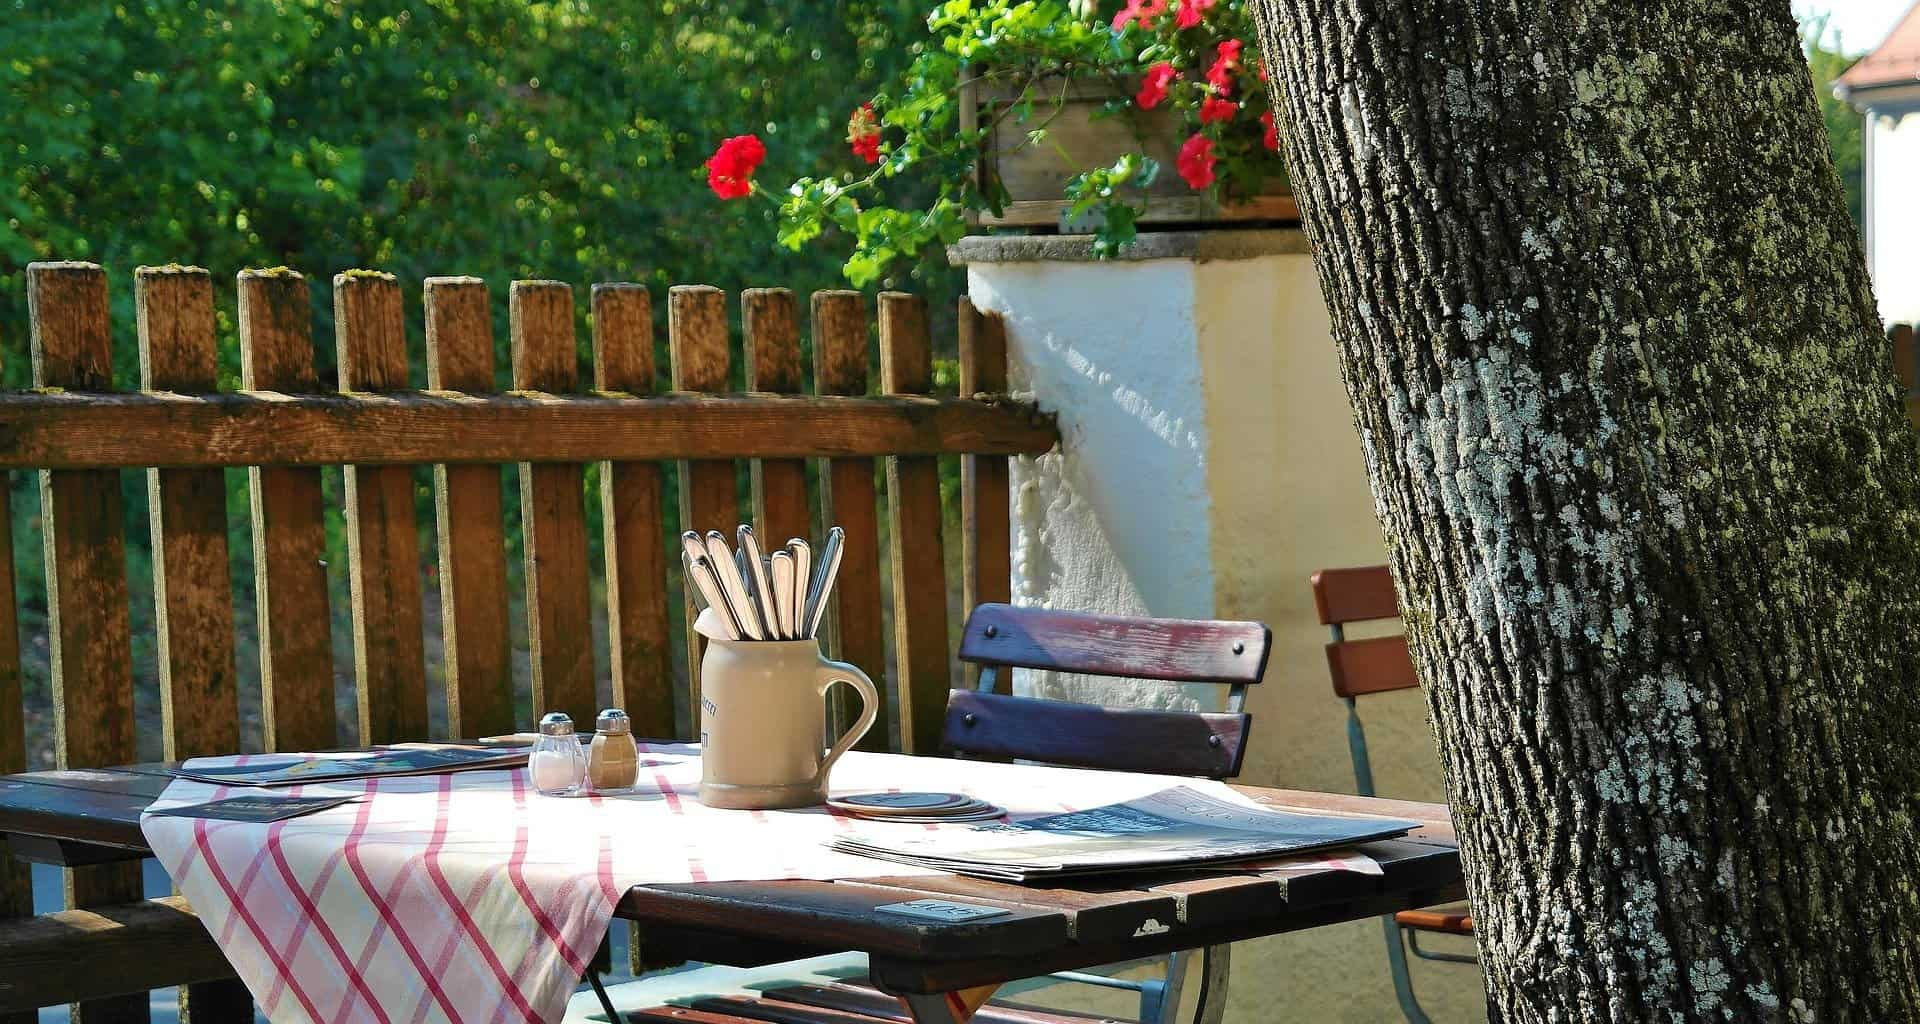 Restaurant Landscaping Ideas to Boost Foot Traffic